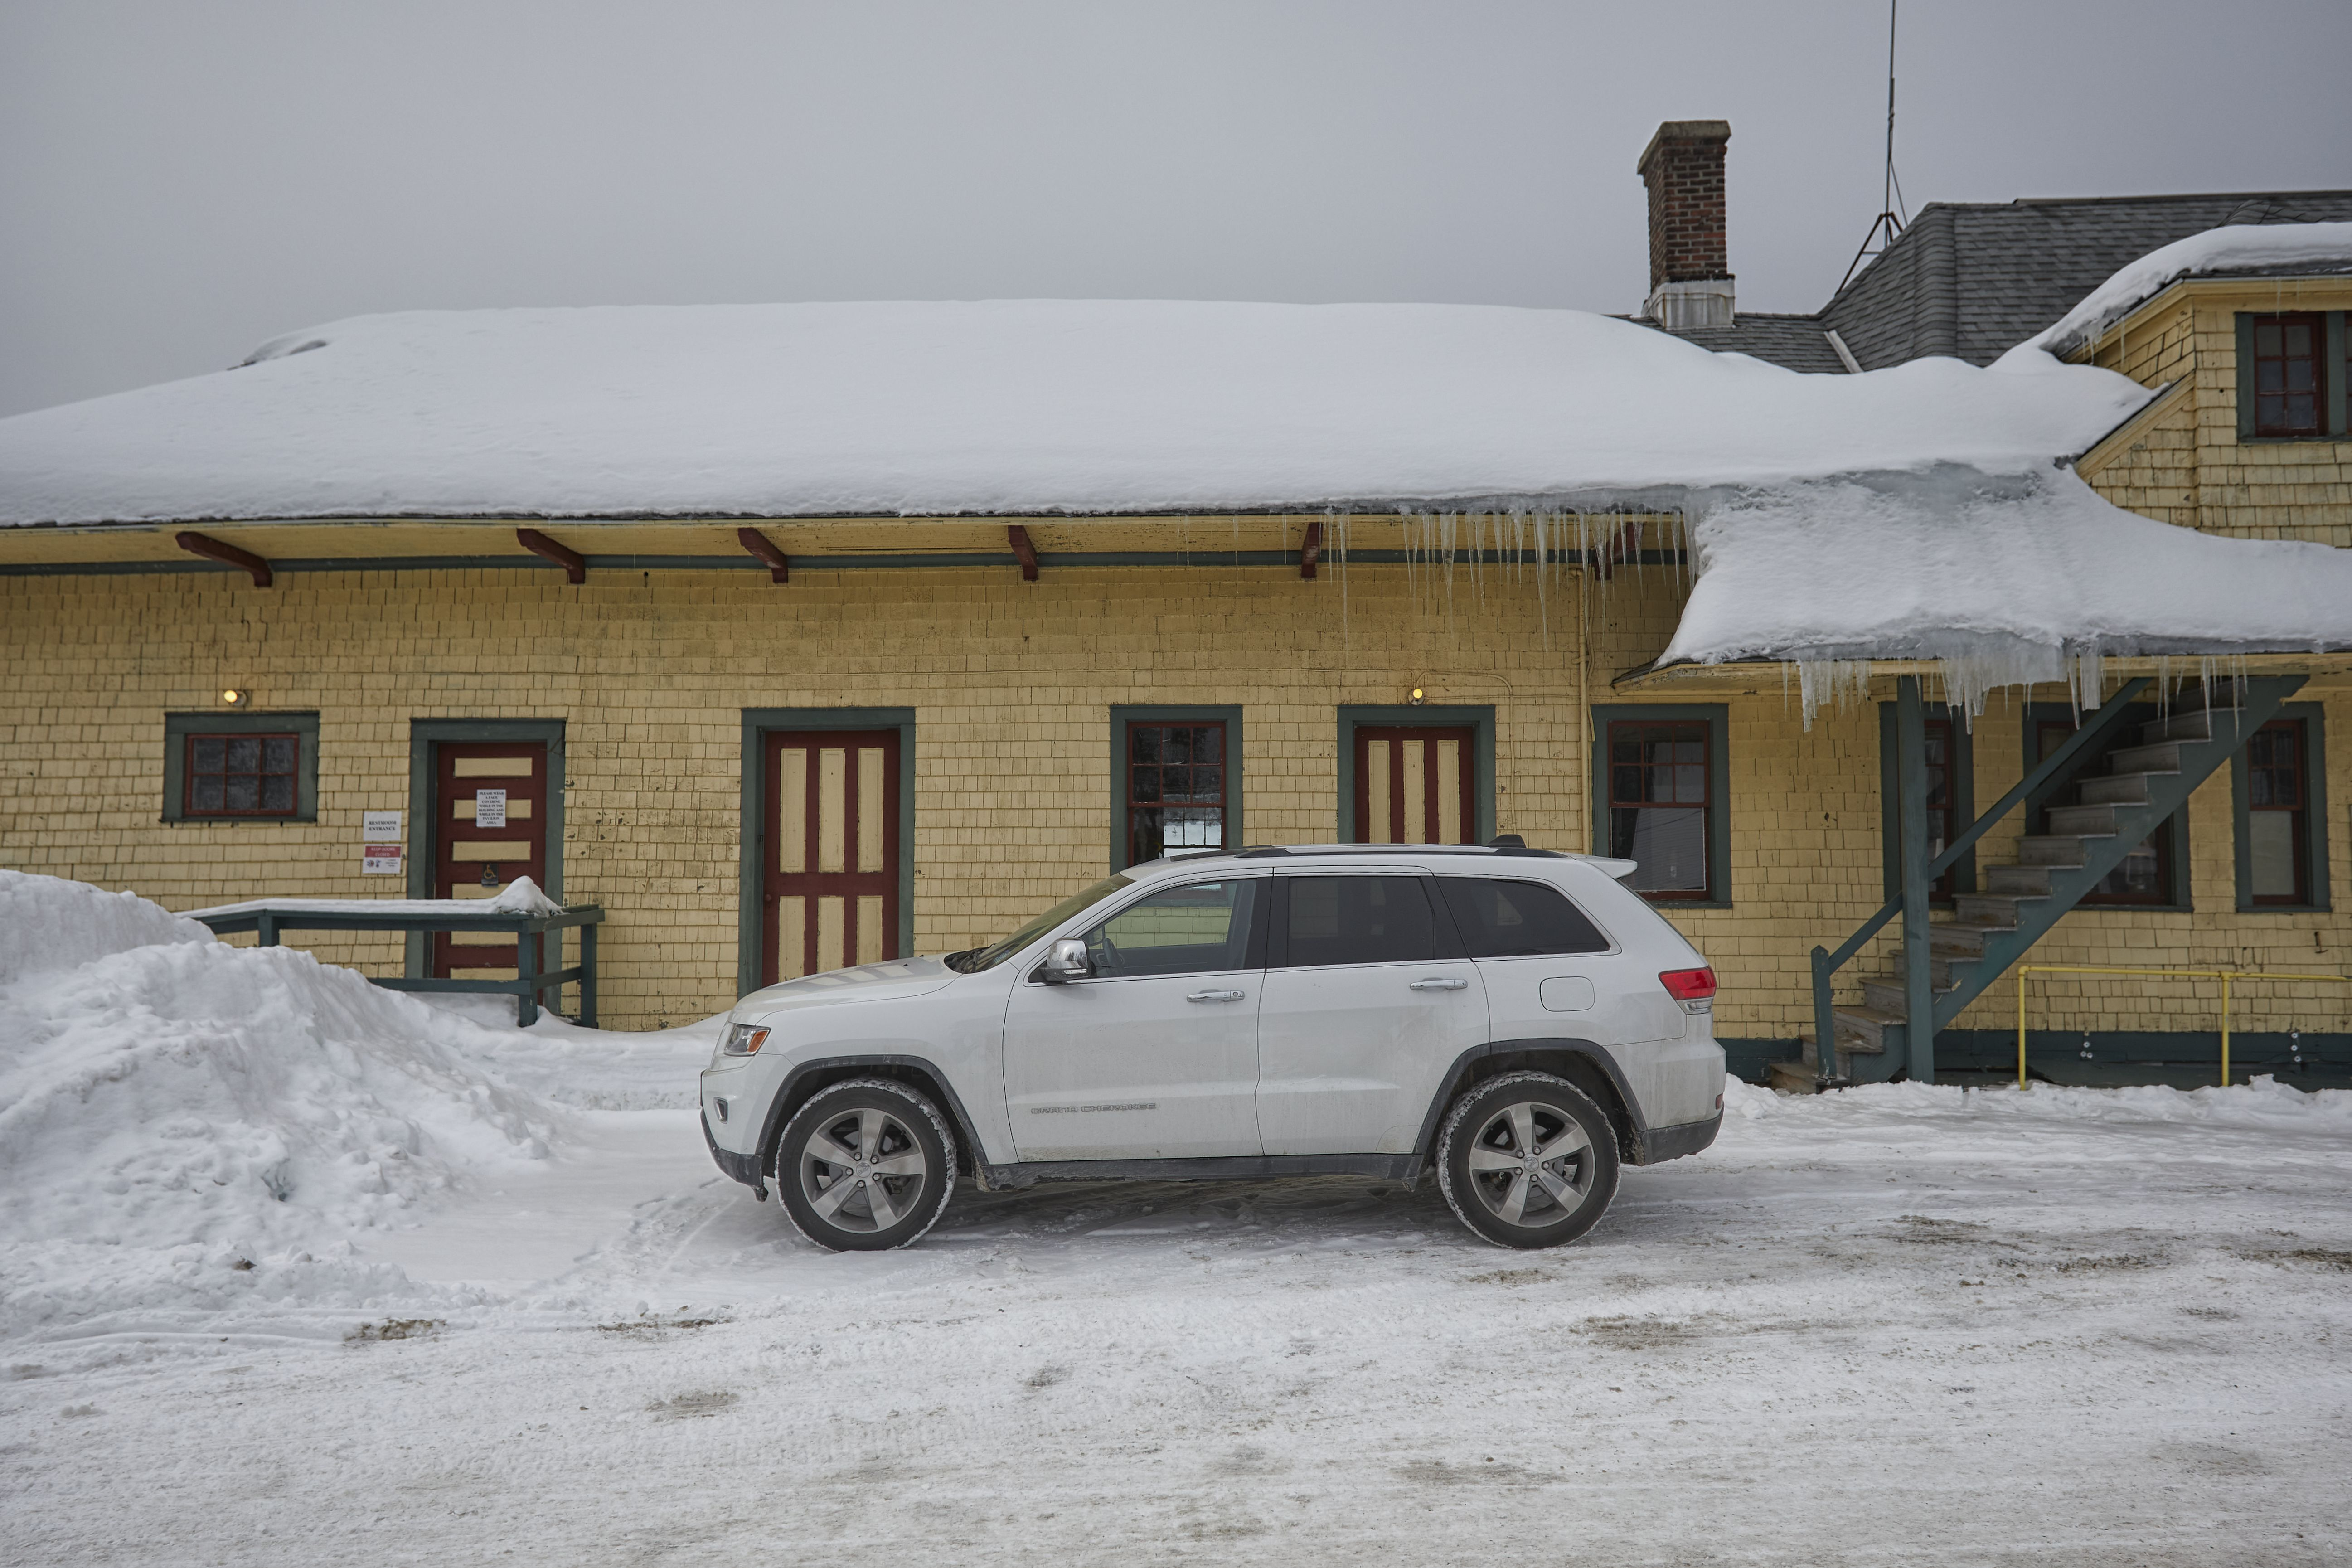 White Jeep Grand Cherokee parked in front of Thendara Train Station.